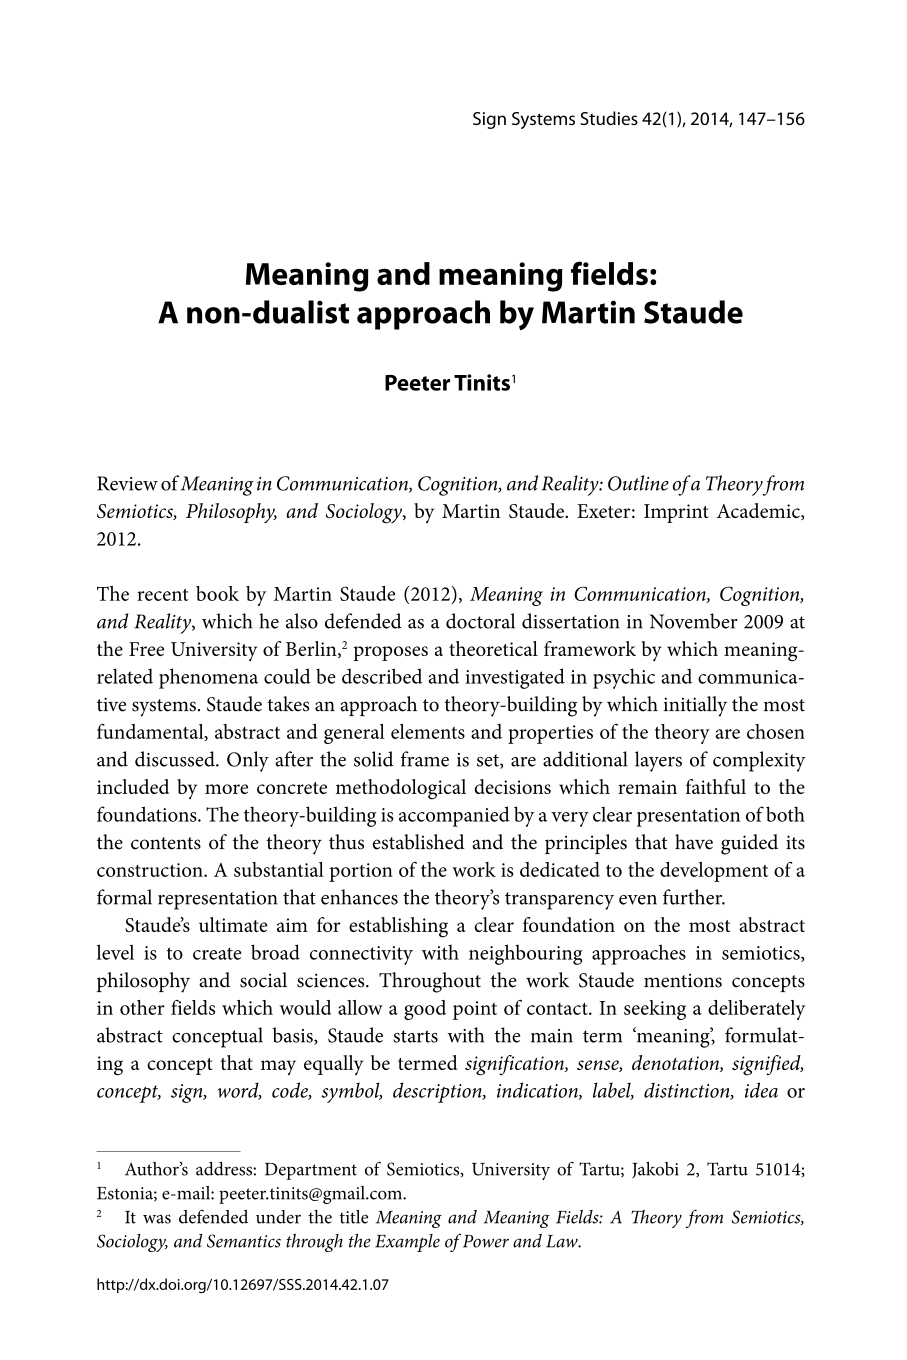 Meaning and meaning fields: A non-dualist approach by Martin